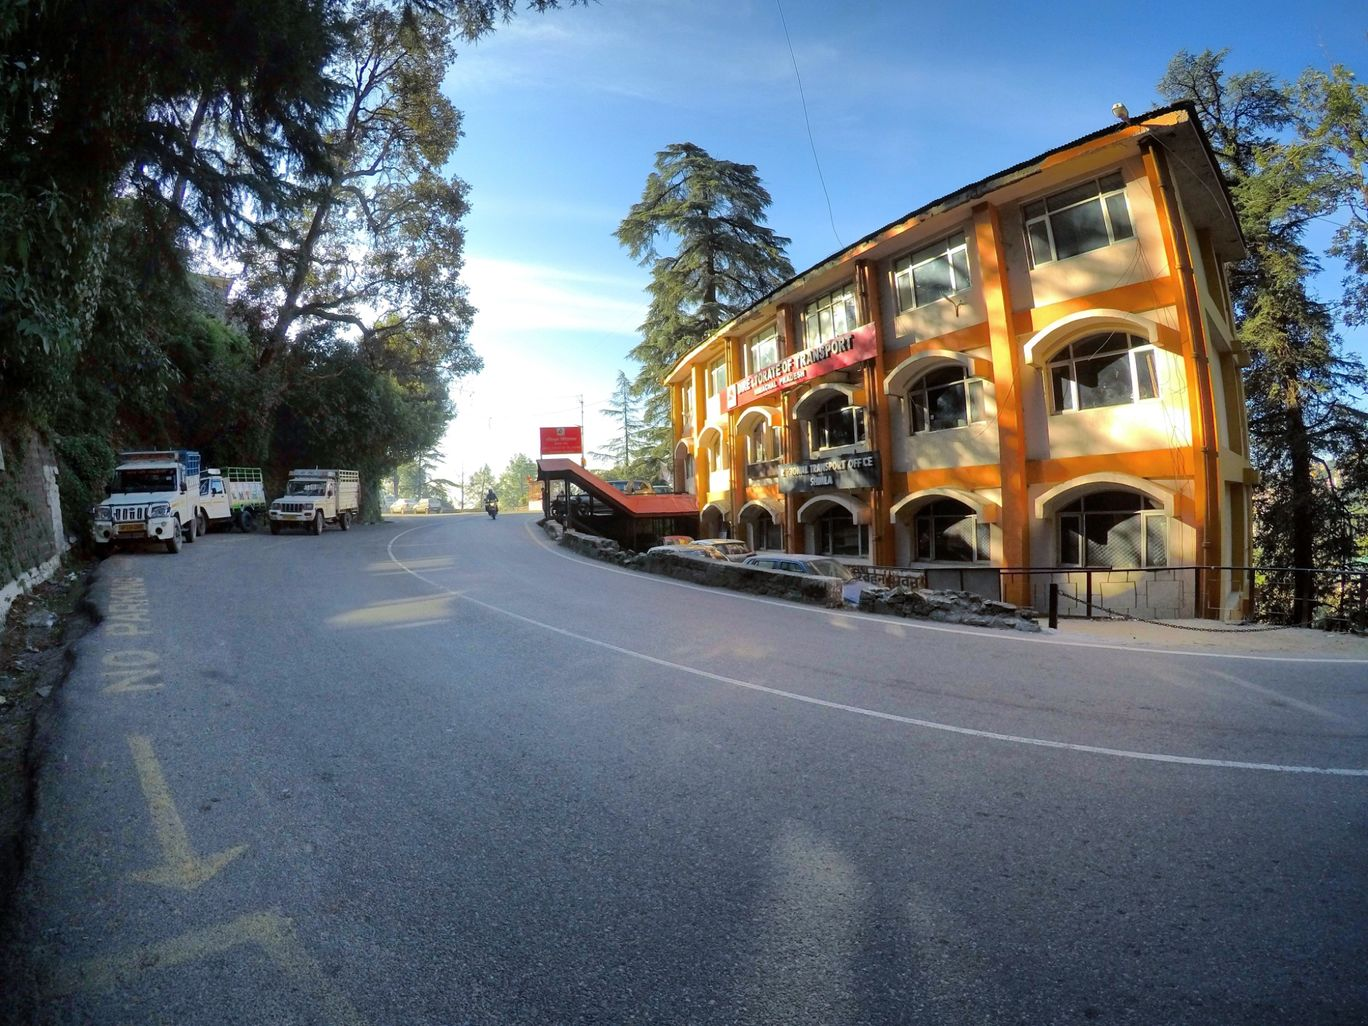 Photo of Shimla By Arnav Das